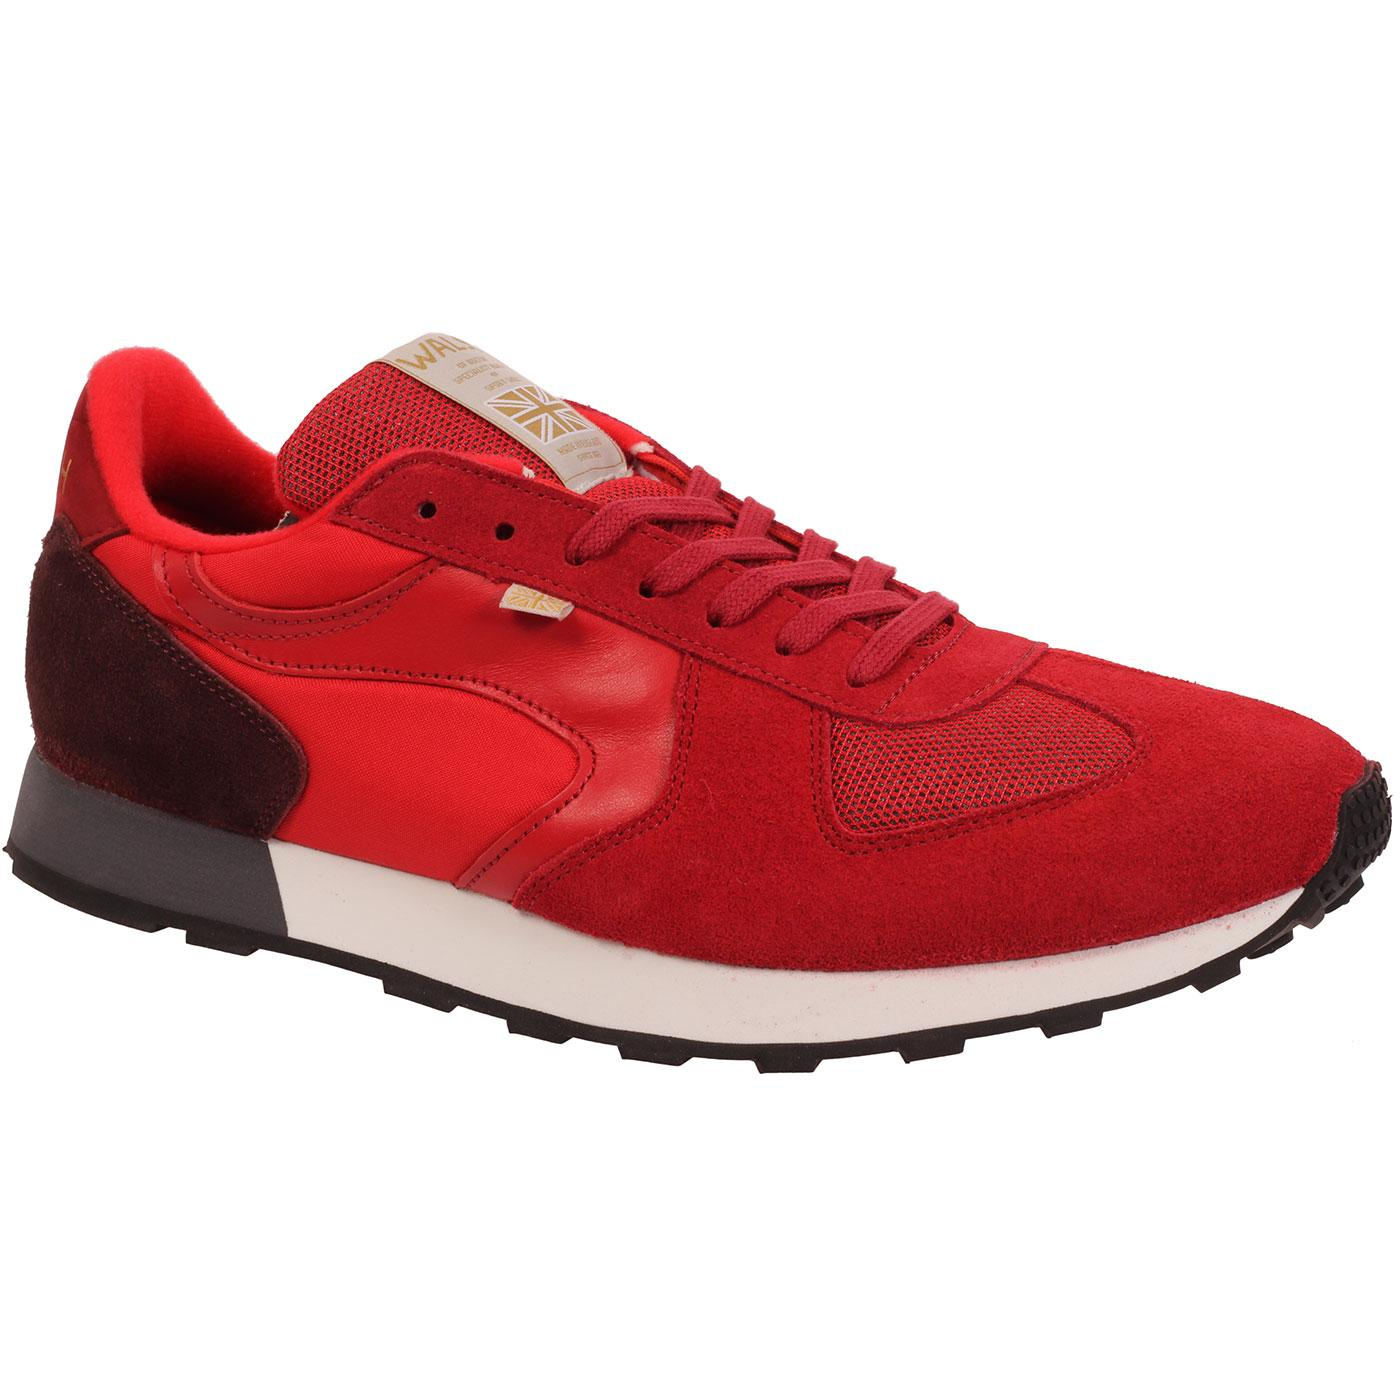 New Glory WALSH Made in England Retro Trainers DR